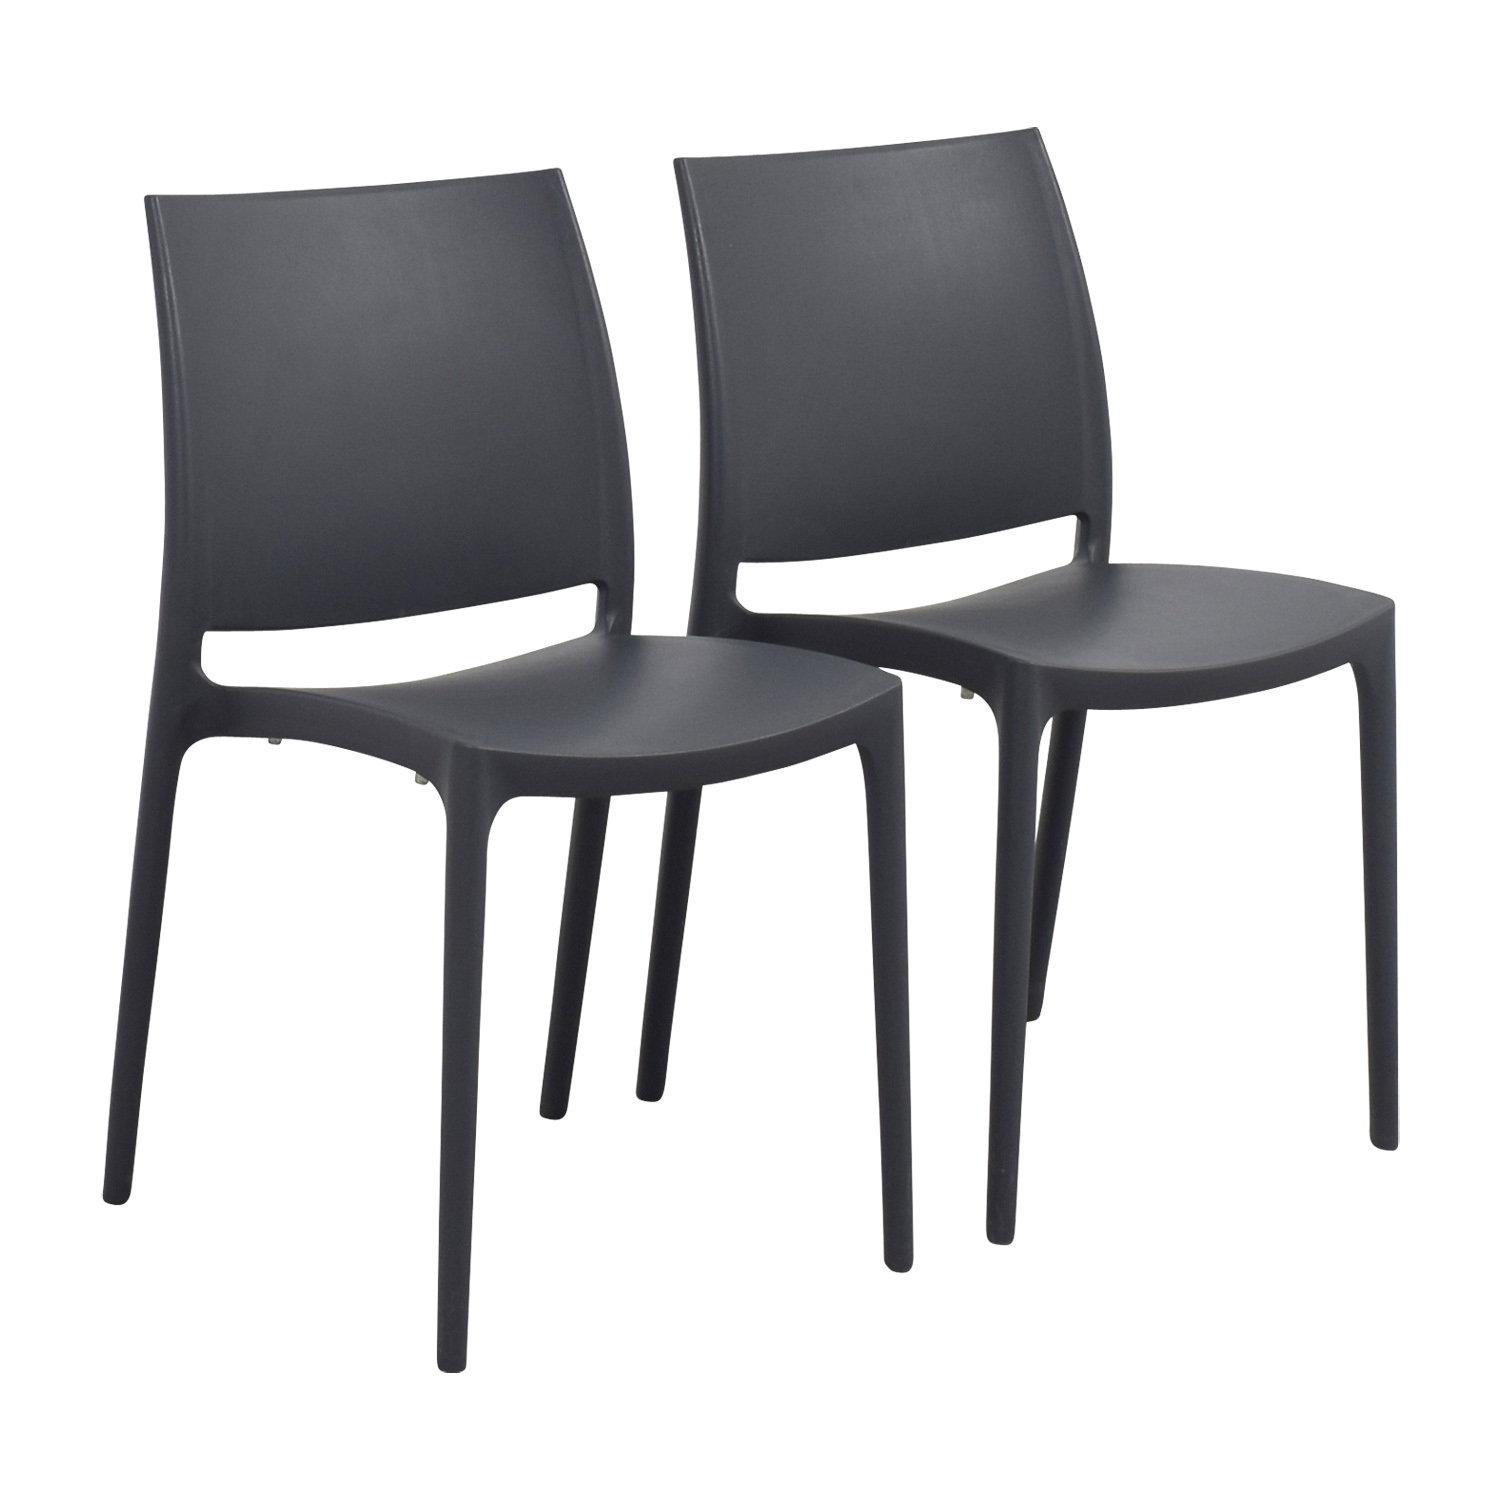 Black plastic chairs chairs seating for Black plastic dining chairs